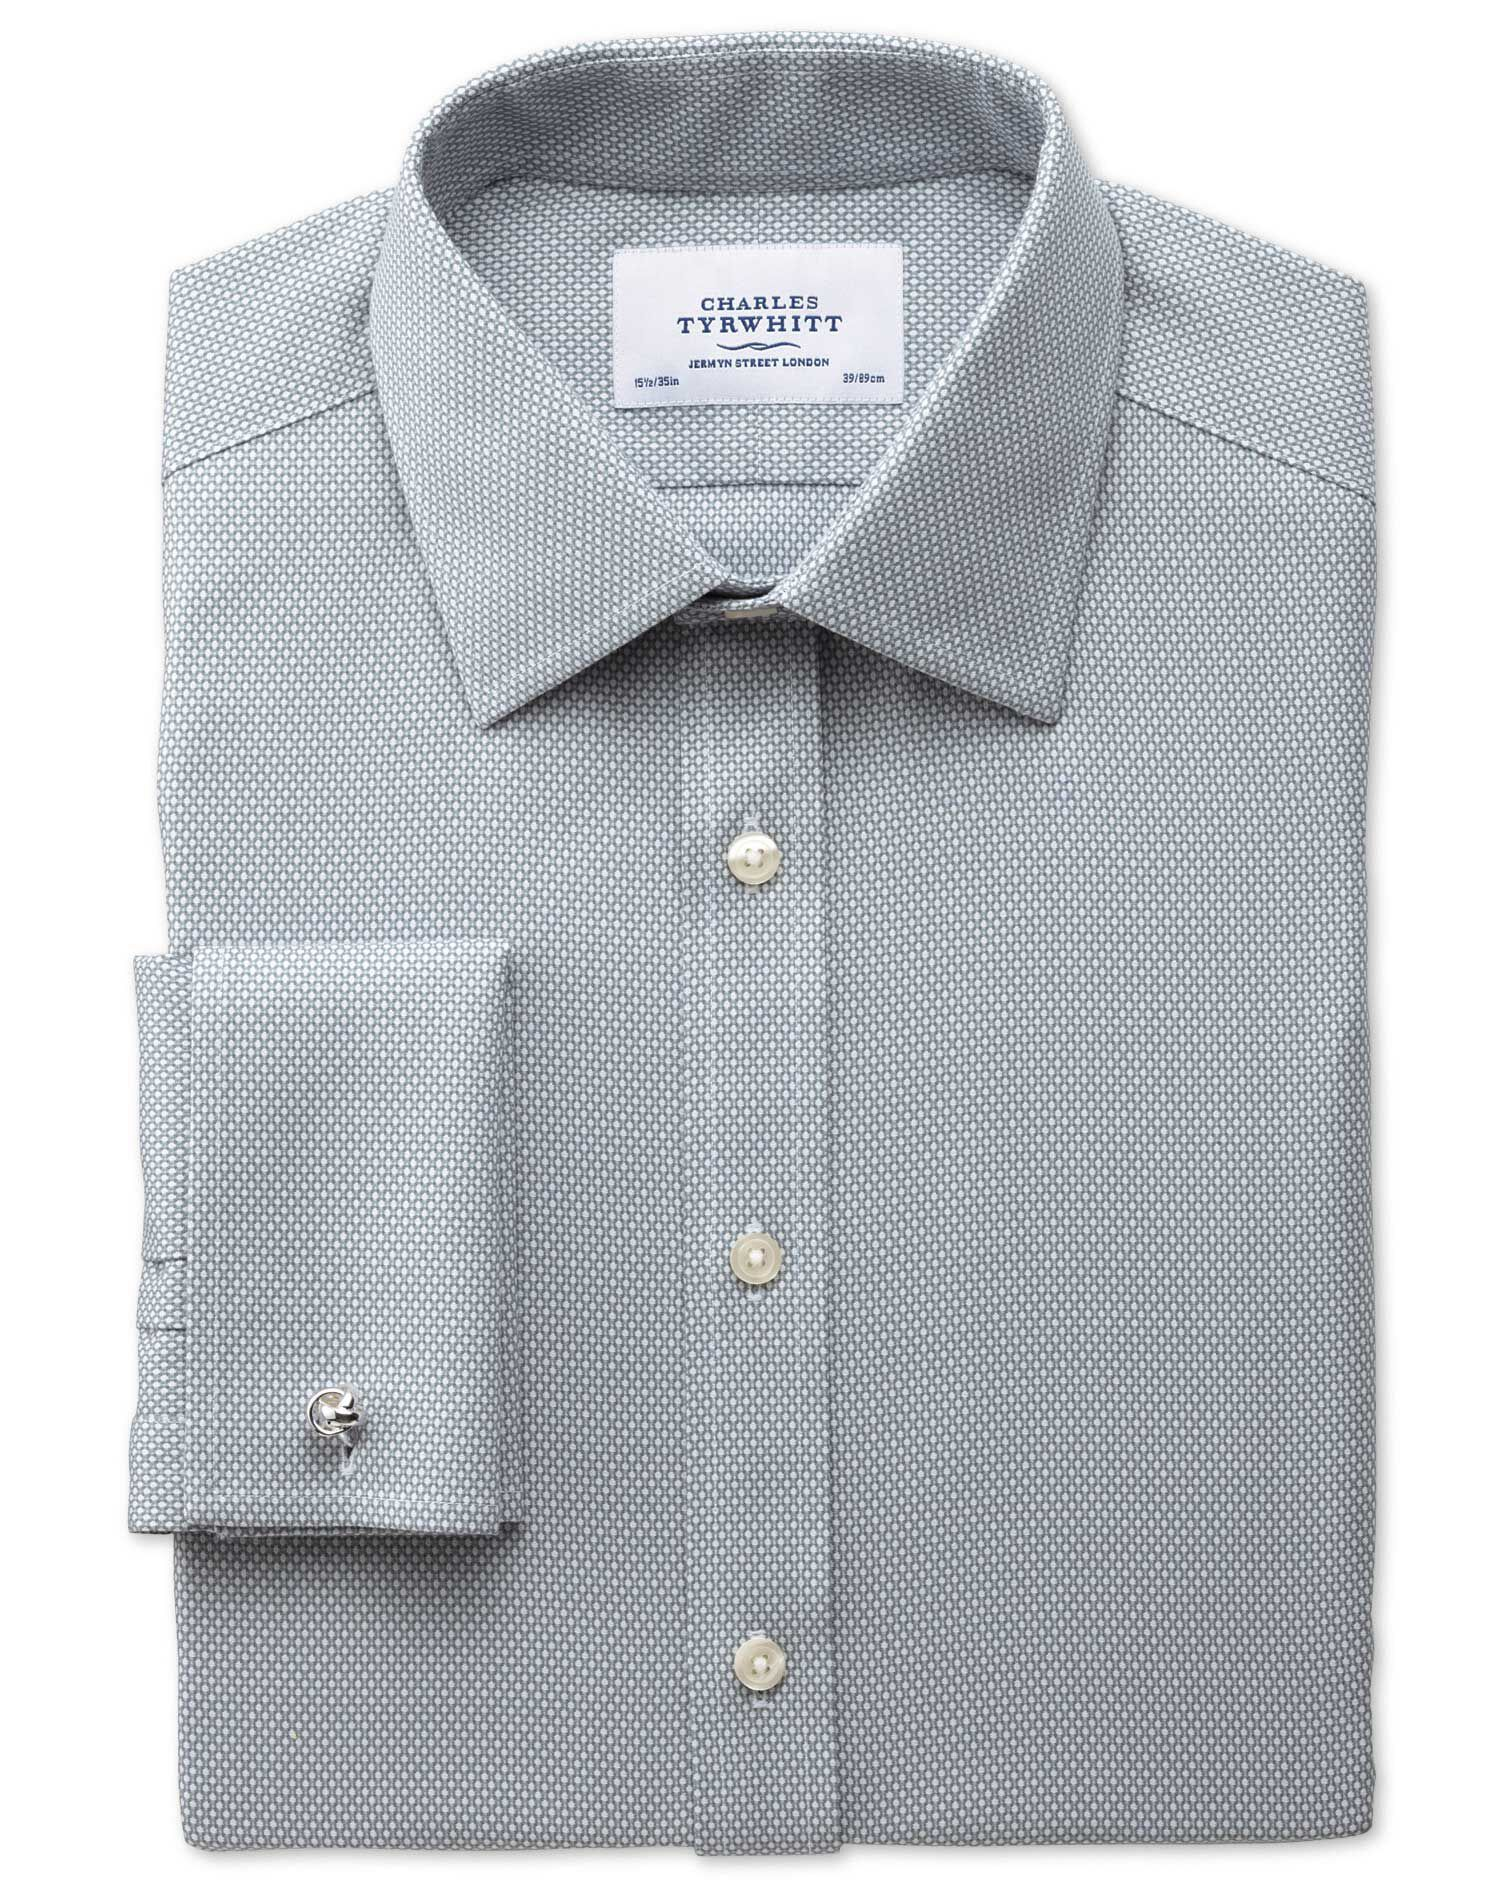 Classic Fit Non-Iron Honeycomb Grey Cotton Formal Shirt Single Cuff Size 15.5/35 by Charles Tyrwhitt